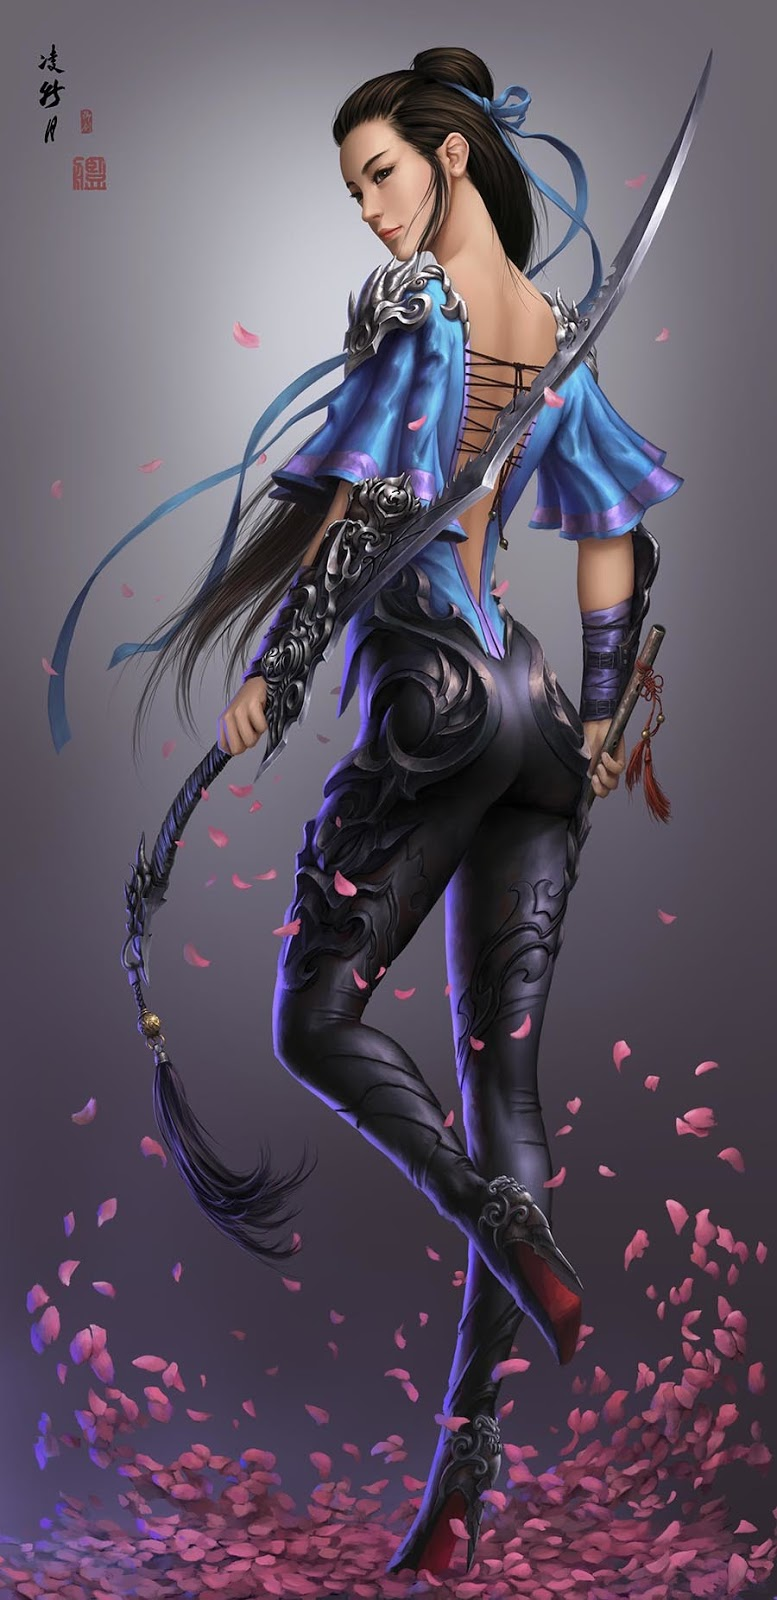 Digital Art By Xiaojian Liu(卡特 Carter adair)